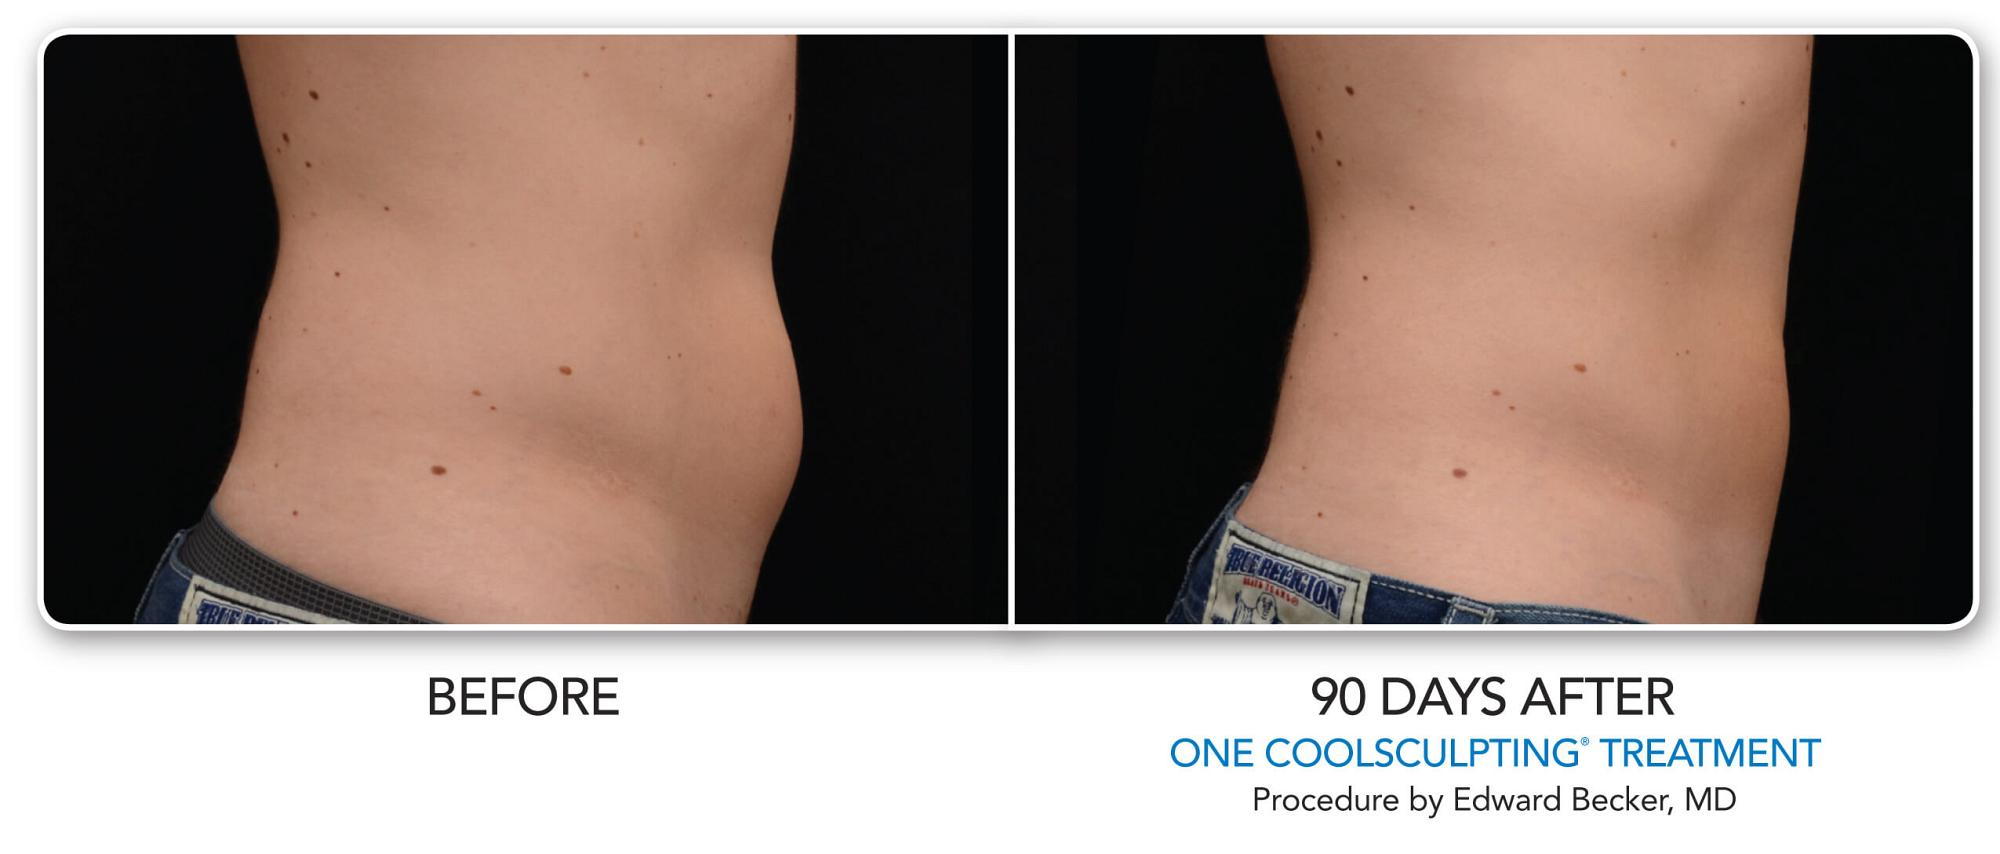 CoolSculpting Before & After Photo